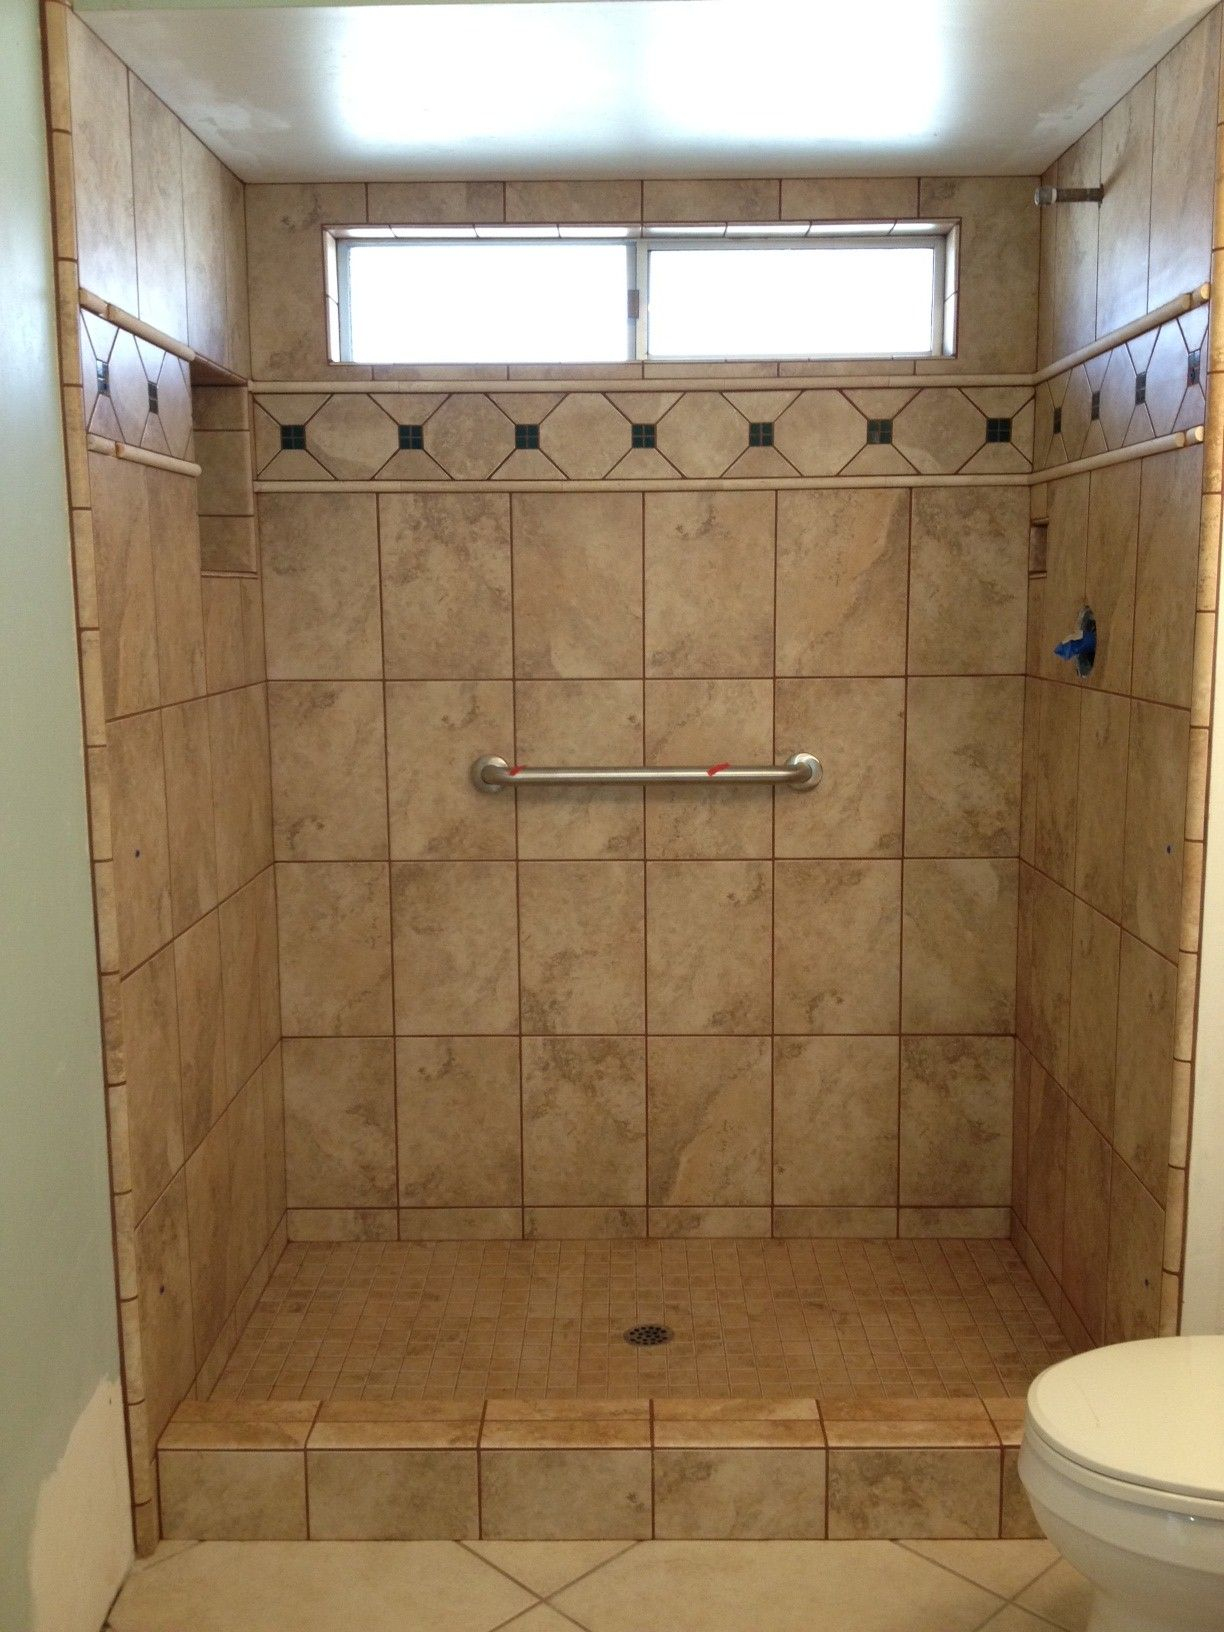 Photos Of Tiled Shower Stalls | Photos Gallery   Custom Tile Work Co.  Ceramic U0026